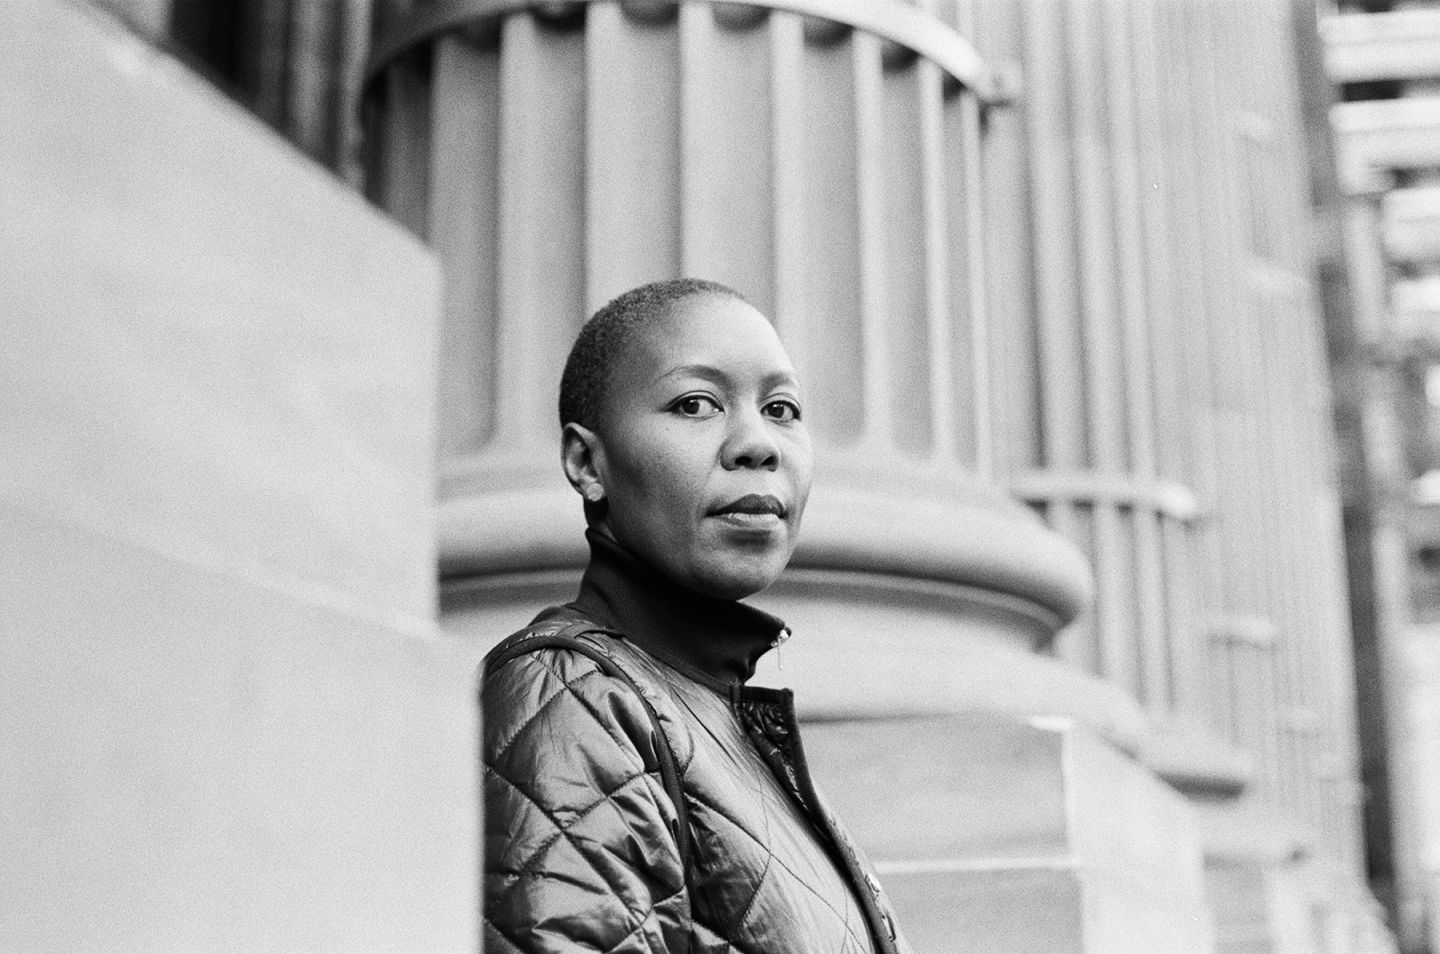 Sisonke-Msimang-photo-by-Beth-Wilkinson-for-Lindsay-04-1440x954.jpg